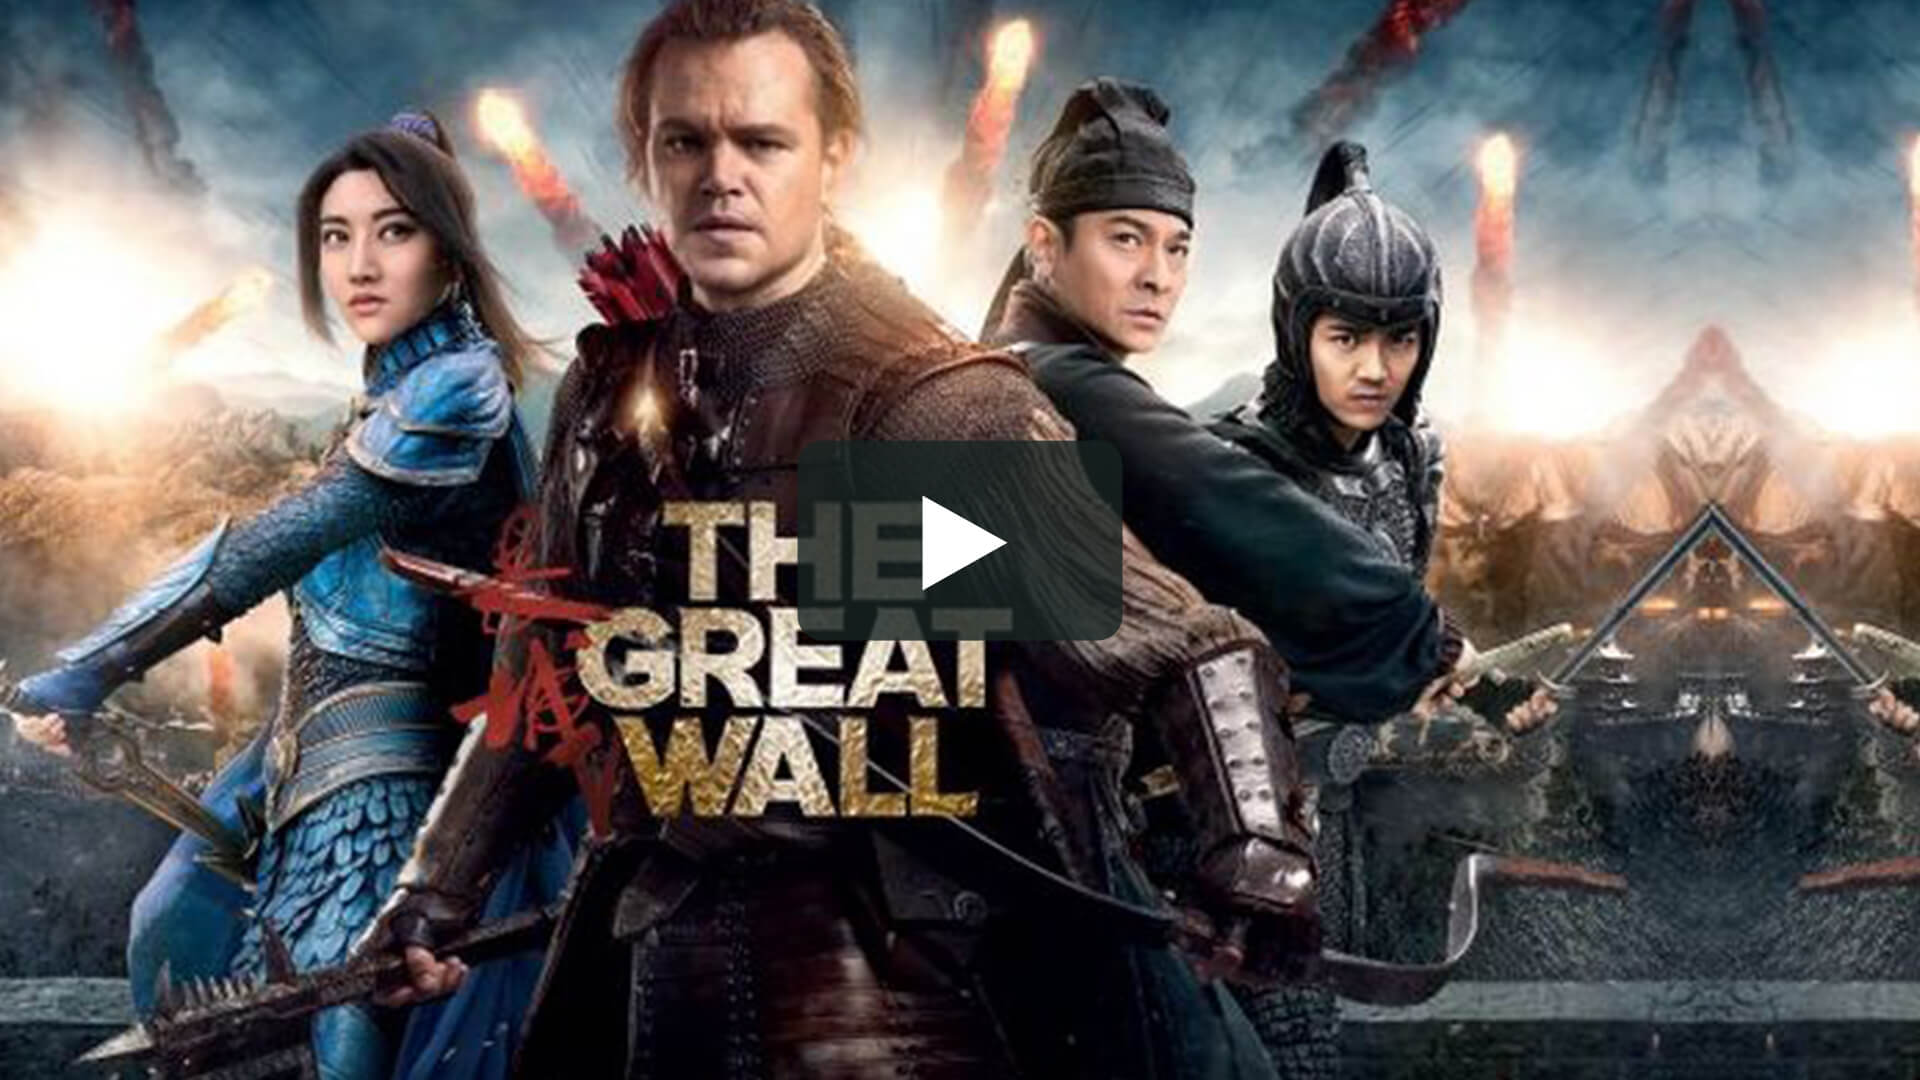 The Great Wall - 長城